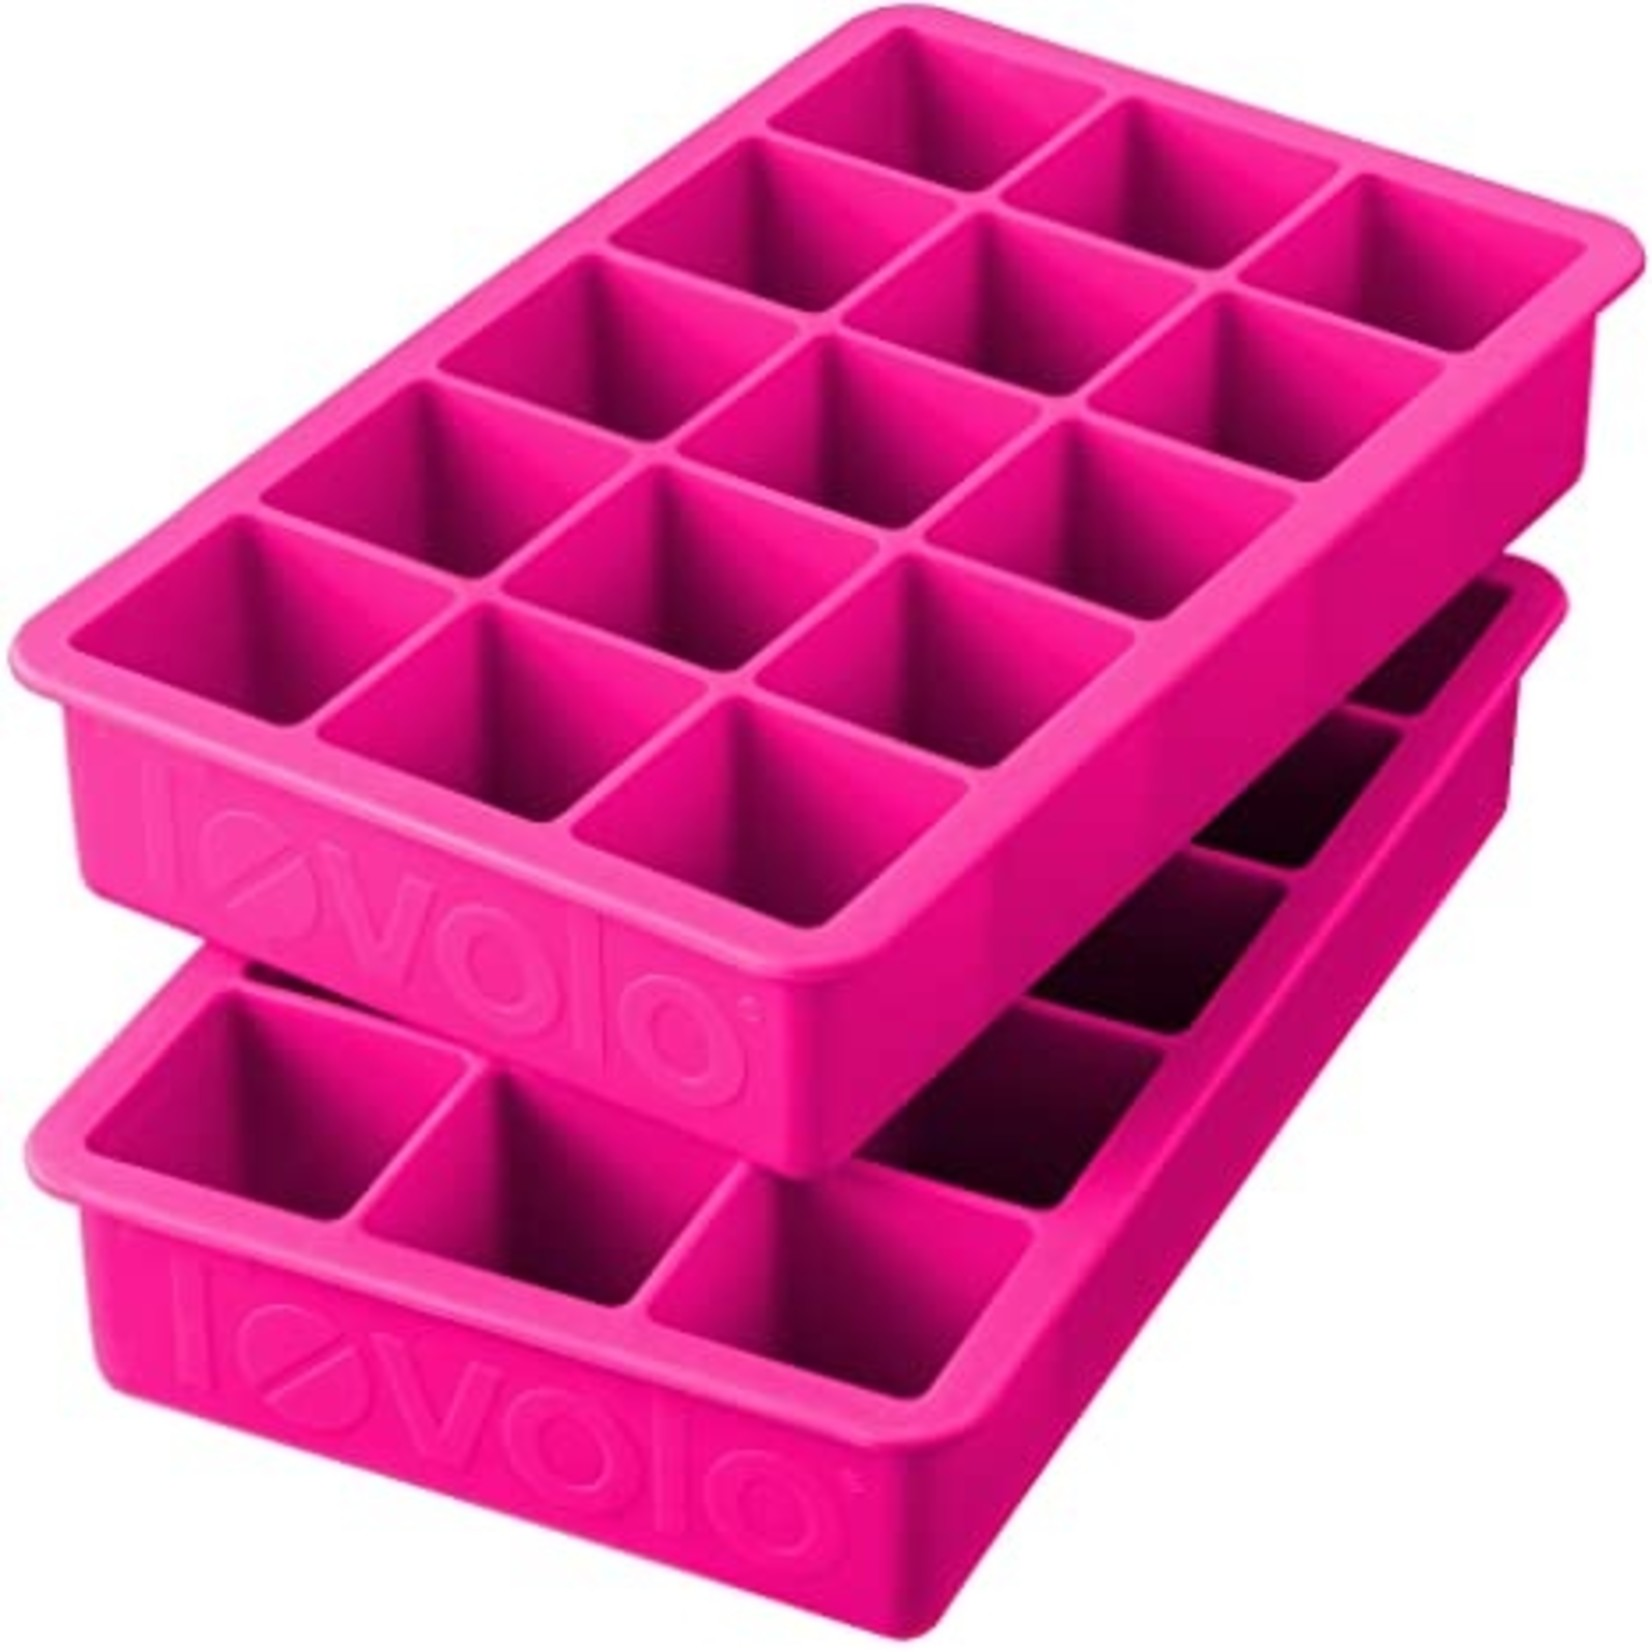 Tovolo Perfect Cube Ice Tray Watermelon Pink